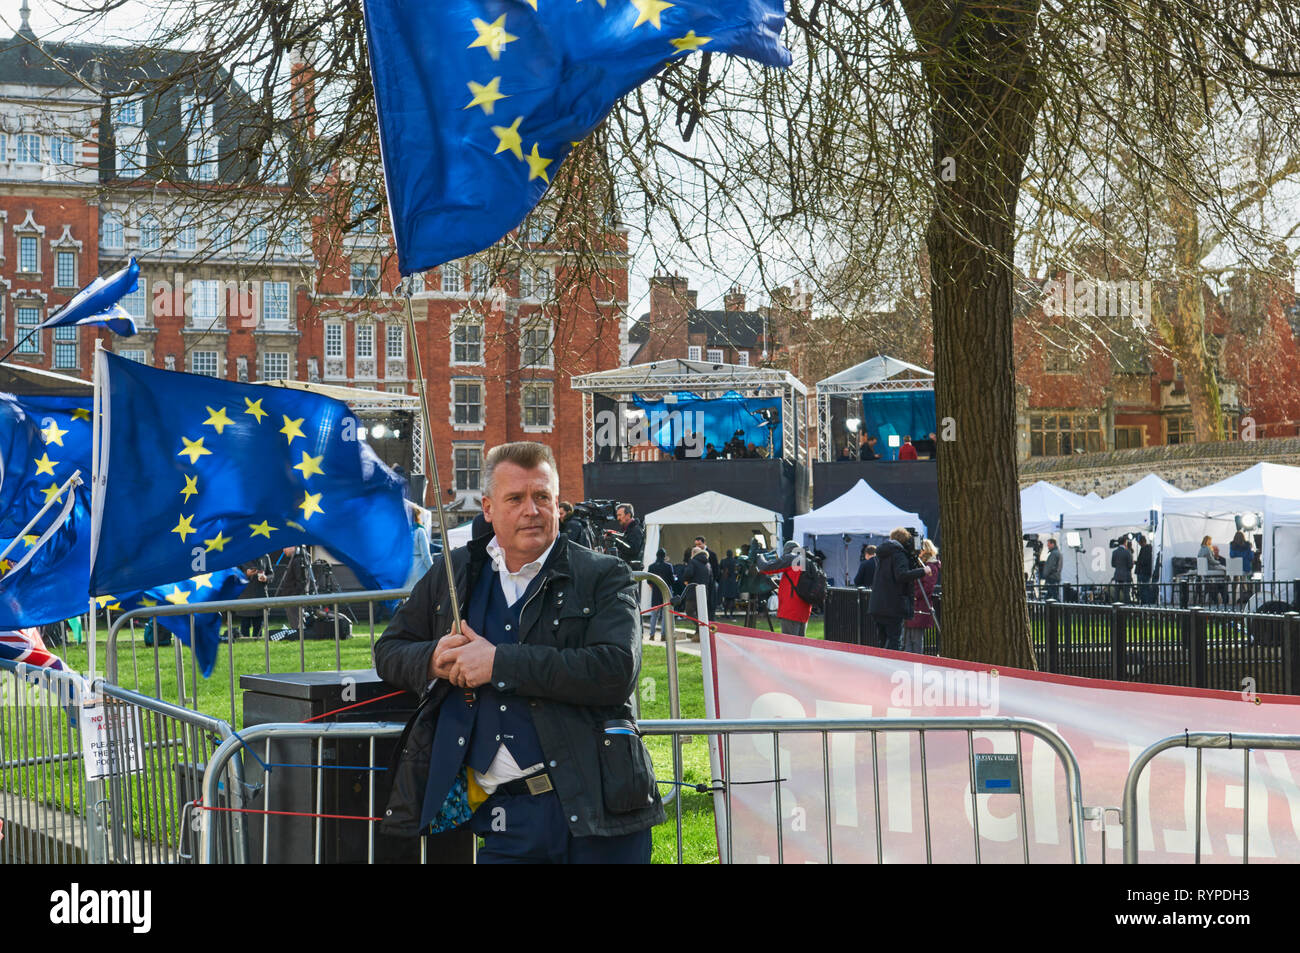 Westminster, London, UK. 14th Mar 2019. Demonstrator with the EU flag in front on the media circus outside the Houses of Parliament, on the 14th March 2019, the day that Parliament voted to delay Brexit Credit: Richard Barnes/Alamy Live News Stock Photo